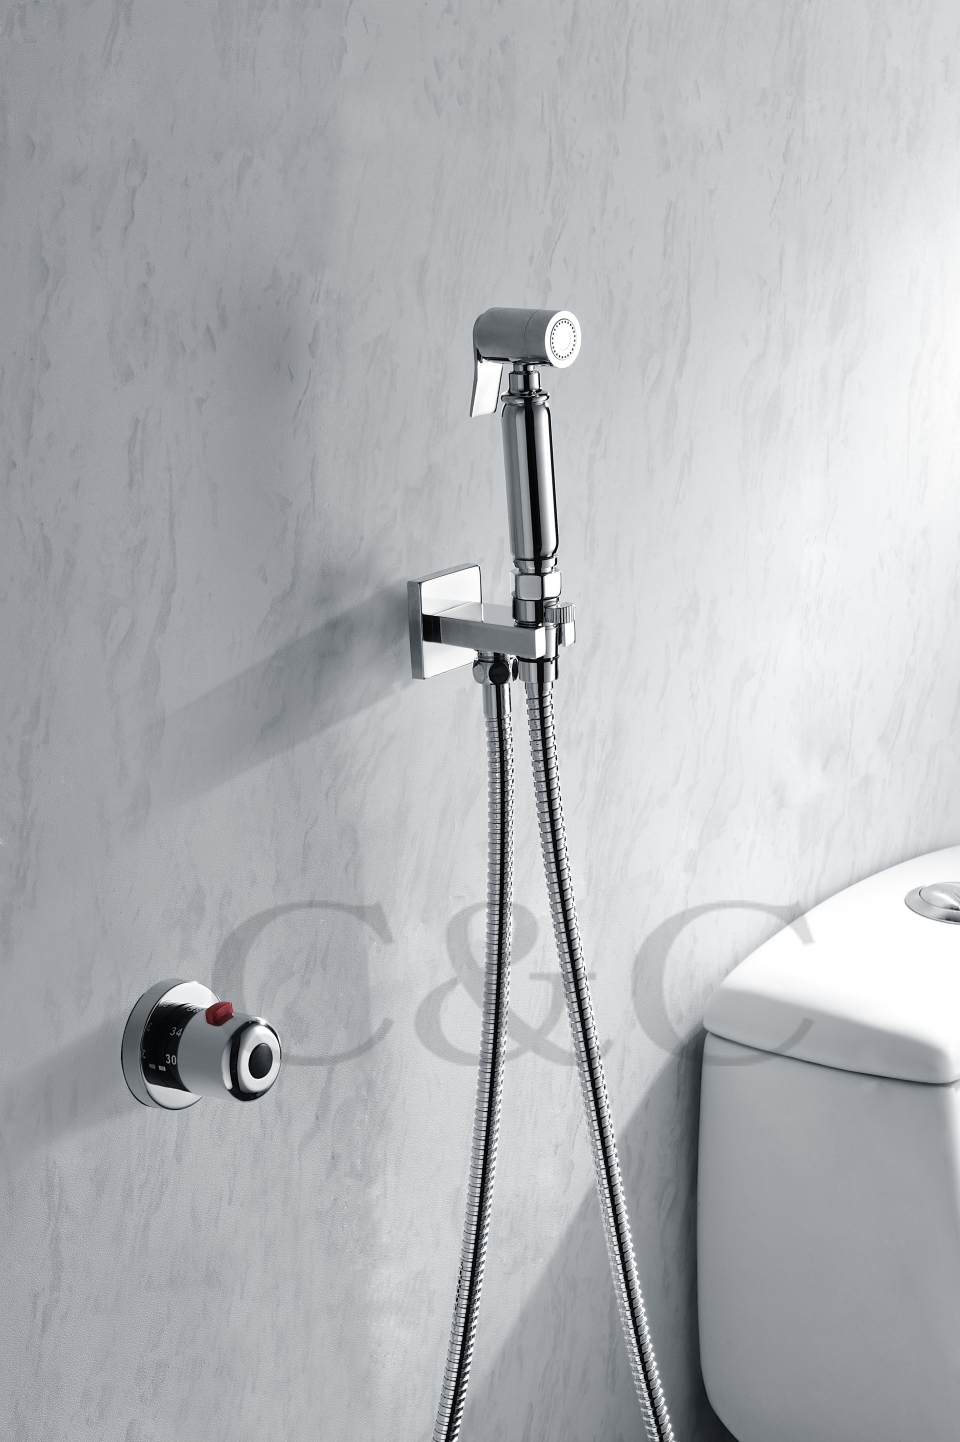 Wall Mounted Handheld Shattaf Bidet Toilet Spray Shower 150 cm Stainless Steel Hose With Thermostatic Faucet Valve A2007D